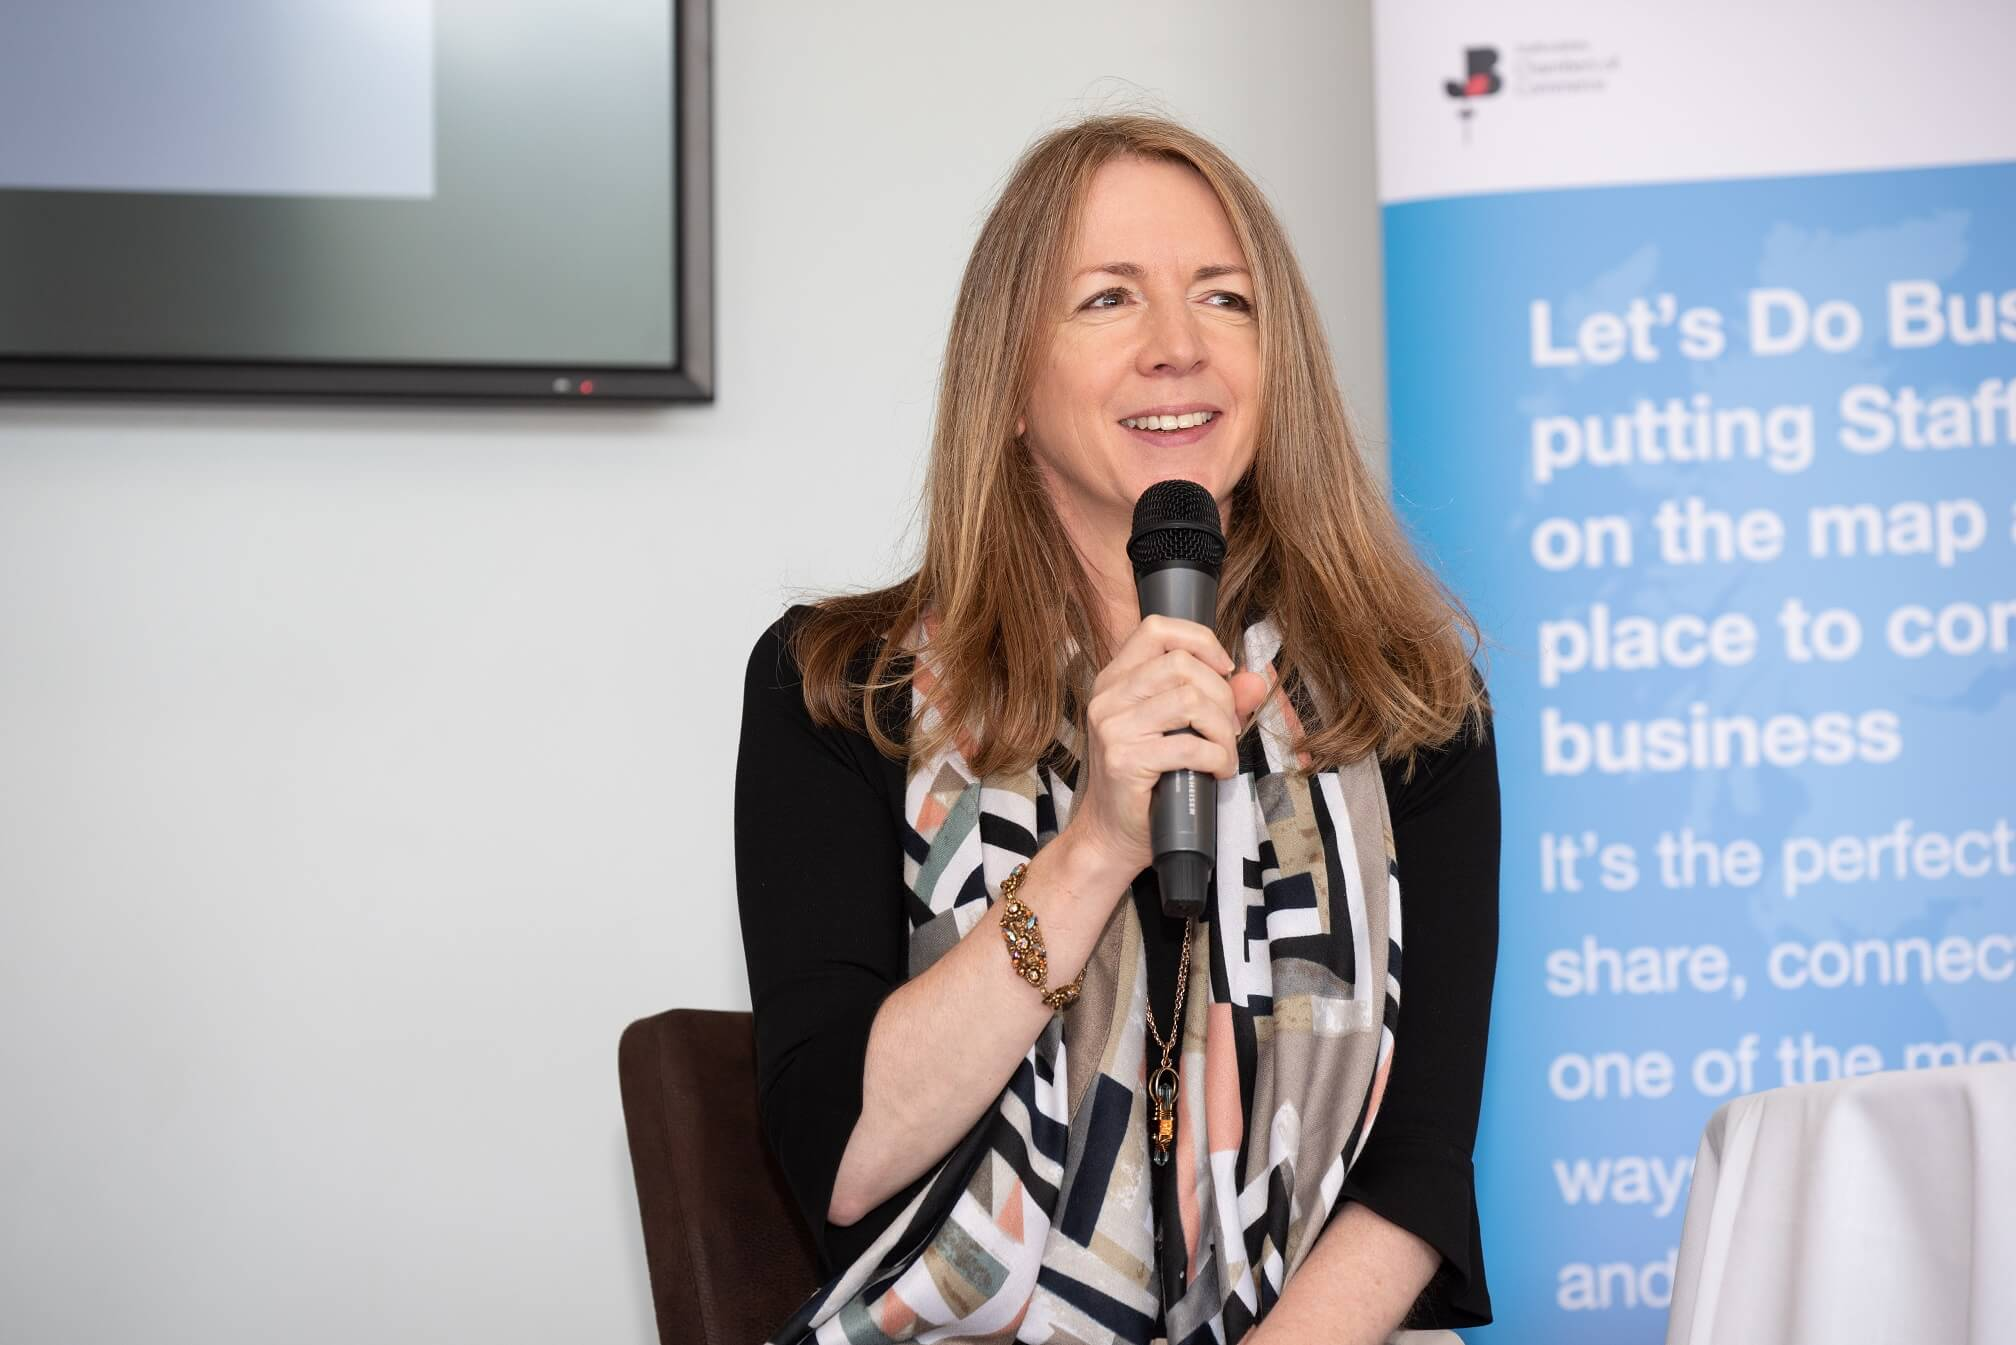 Business entrepreneur Rachel Elnaugh speaking into a microphone at Let's Do Business event on stage